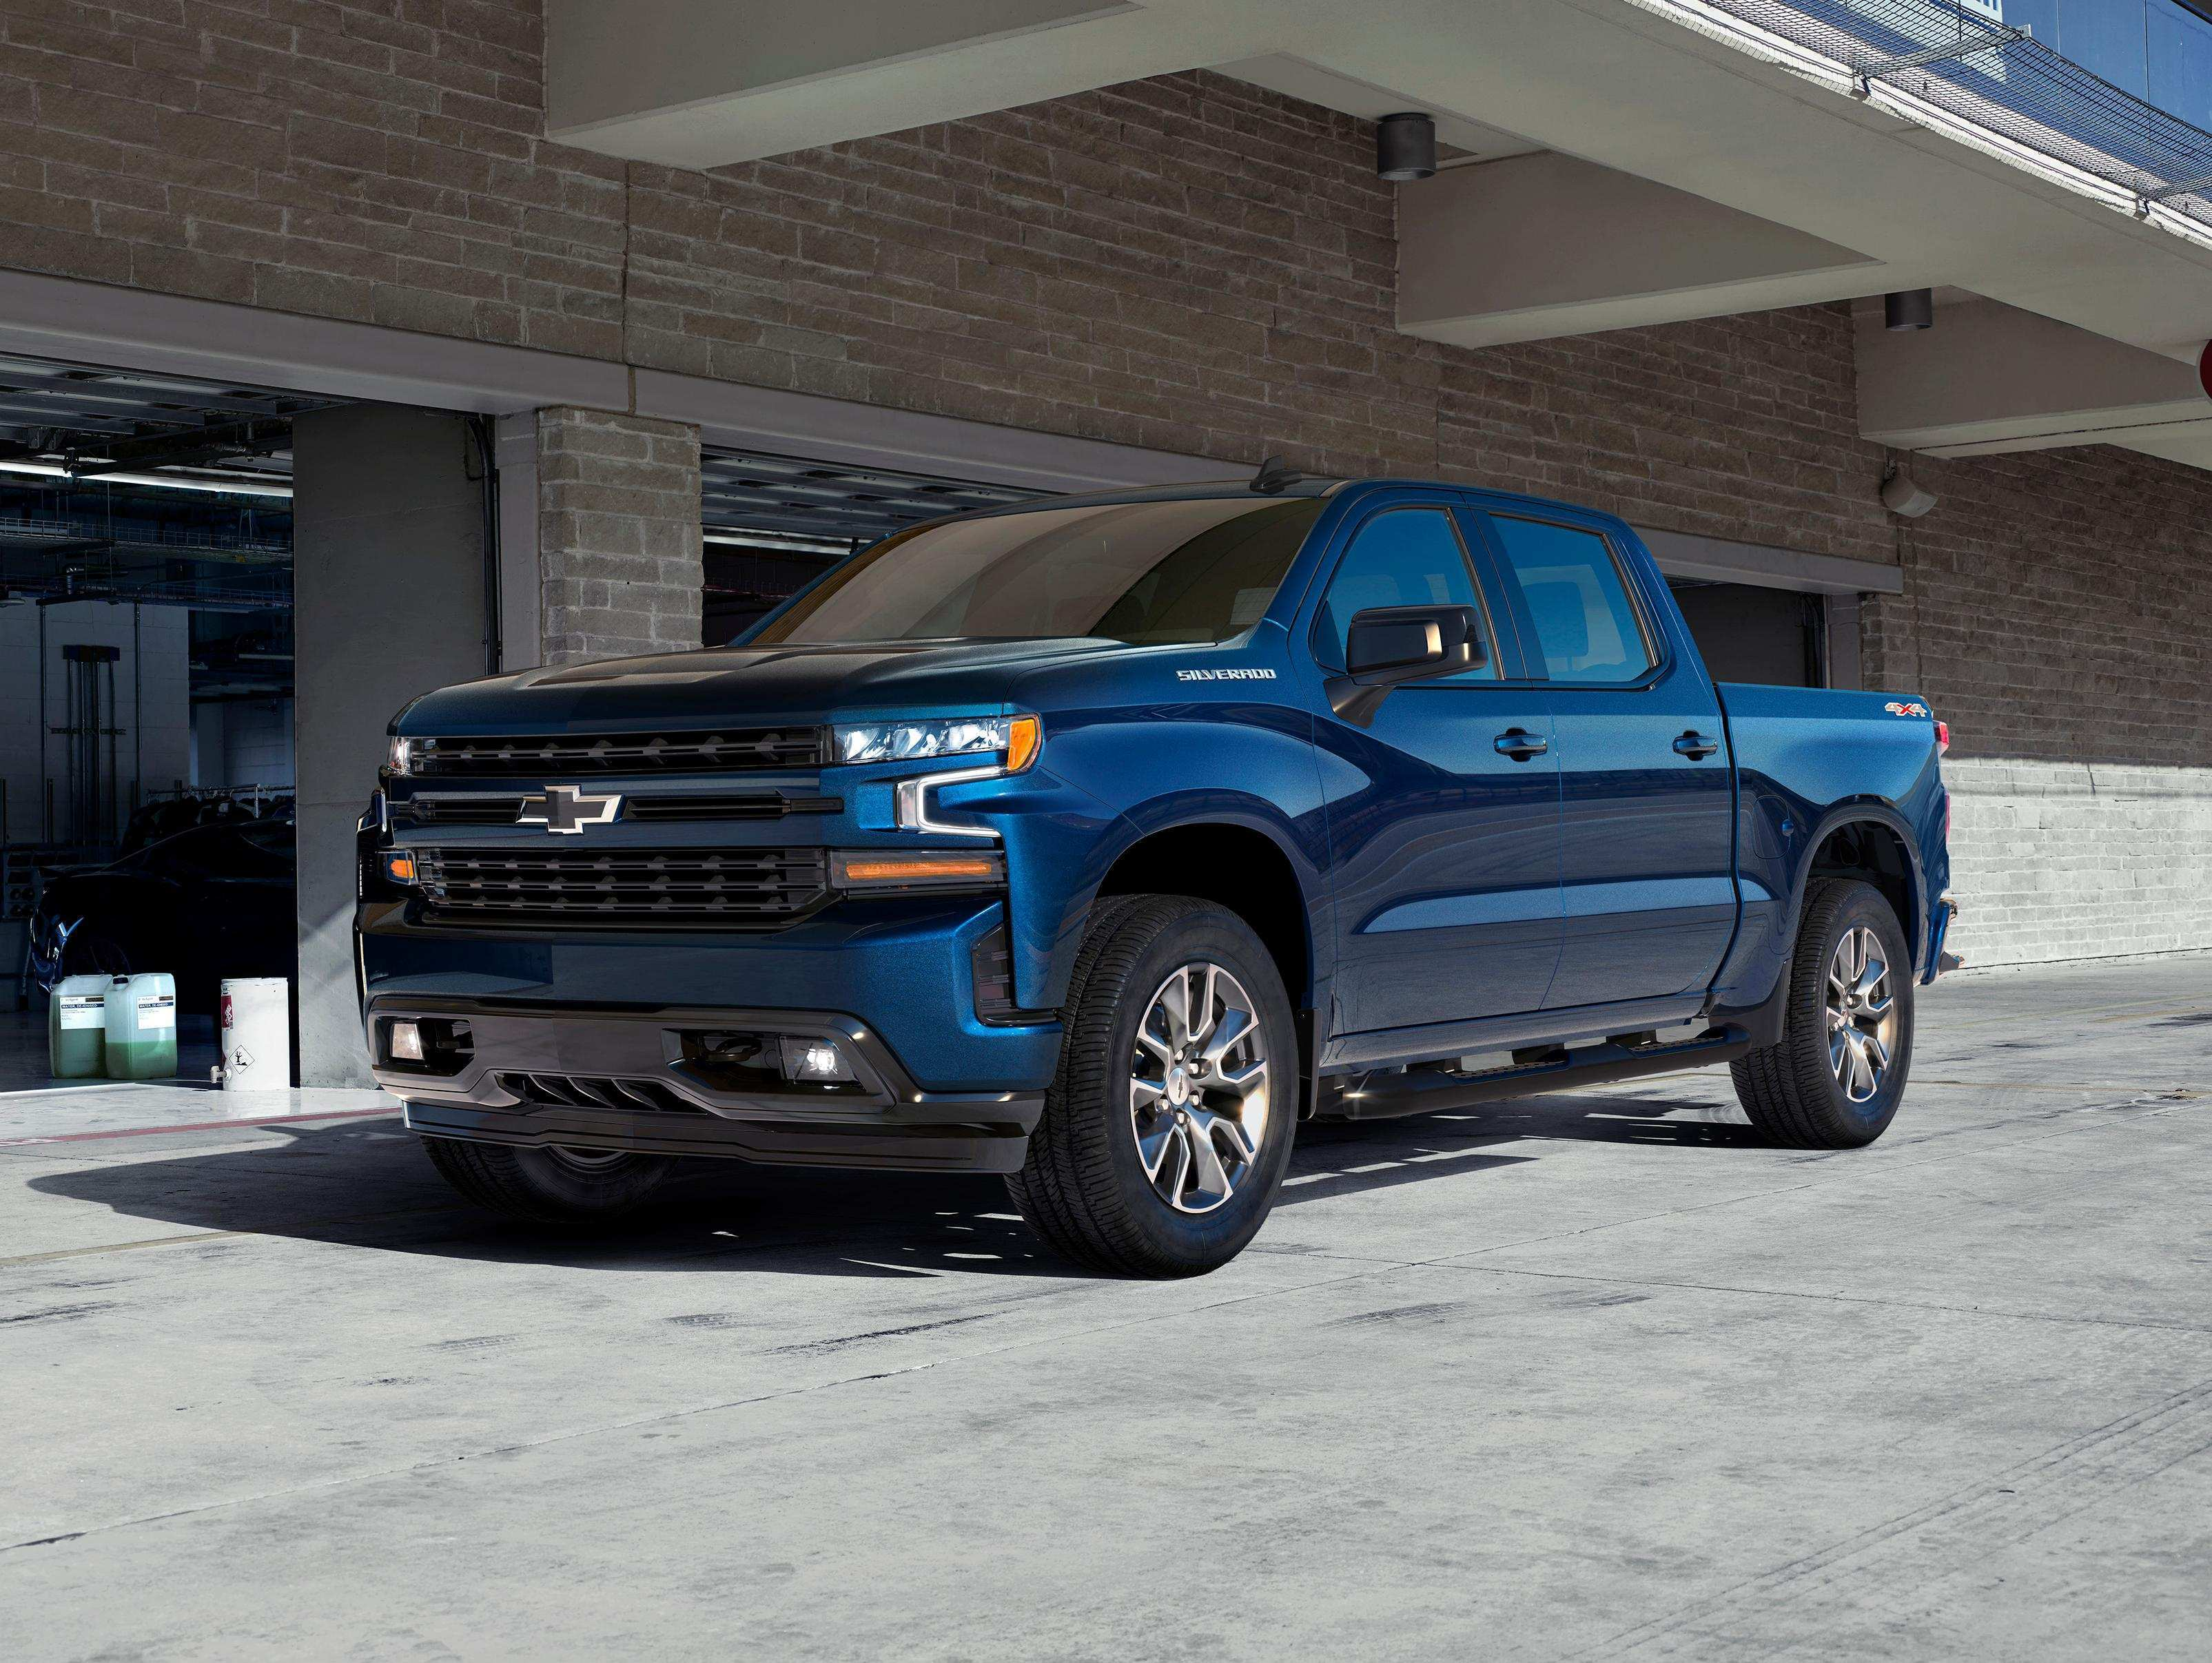 80 All New New Gmc Sierra 2019 Weight Redesign And Price Release with New Gmc Sierra 2019 Weight Redesign And Price